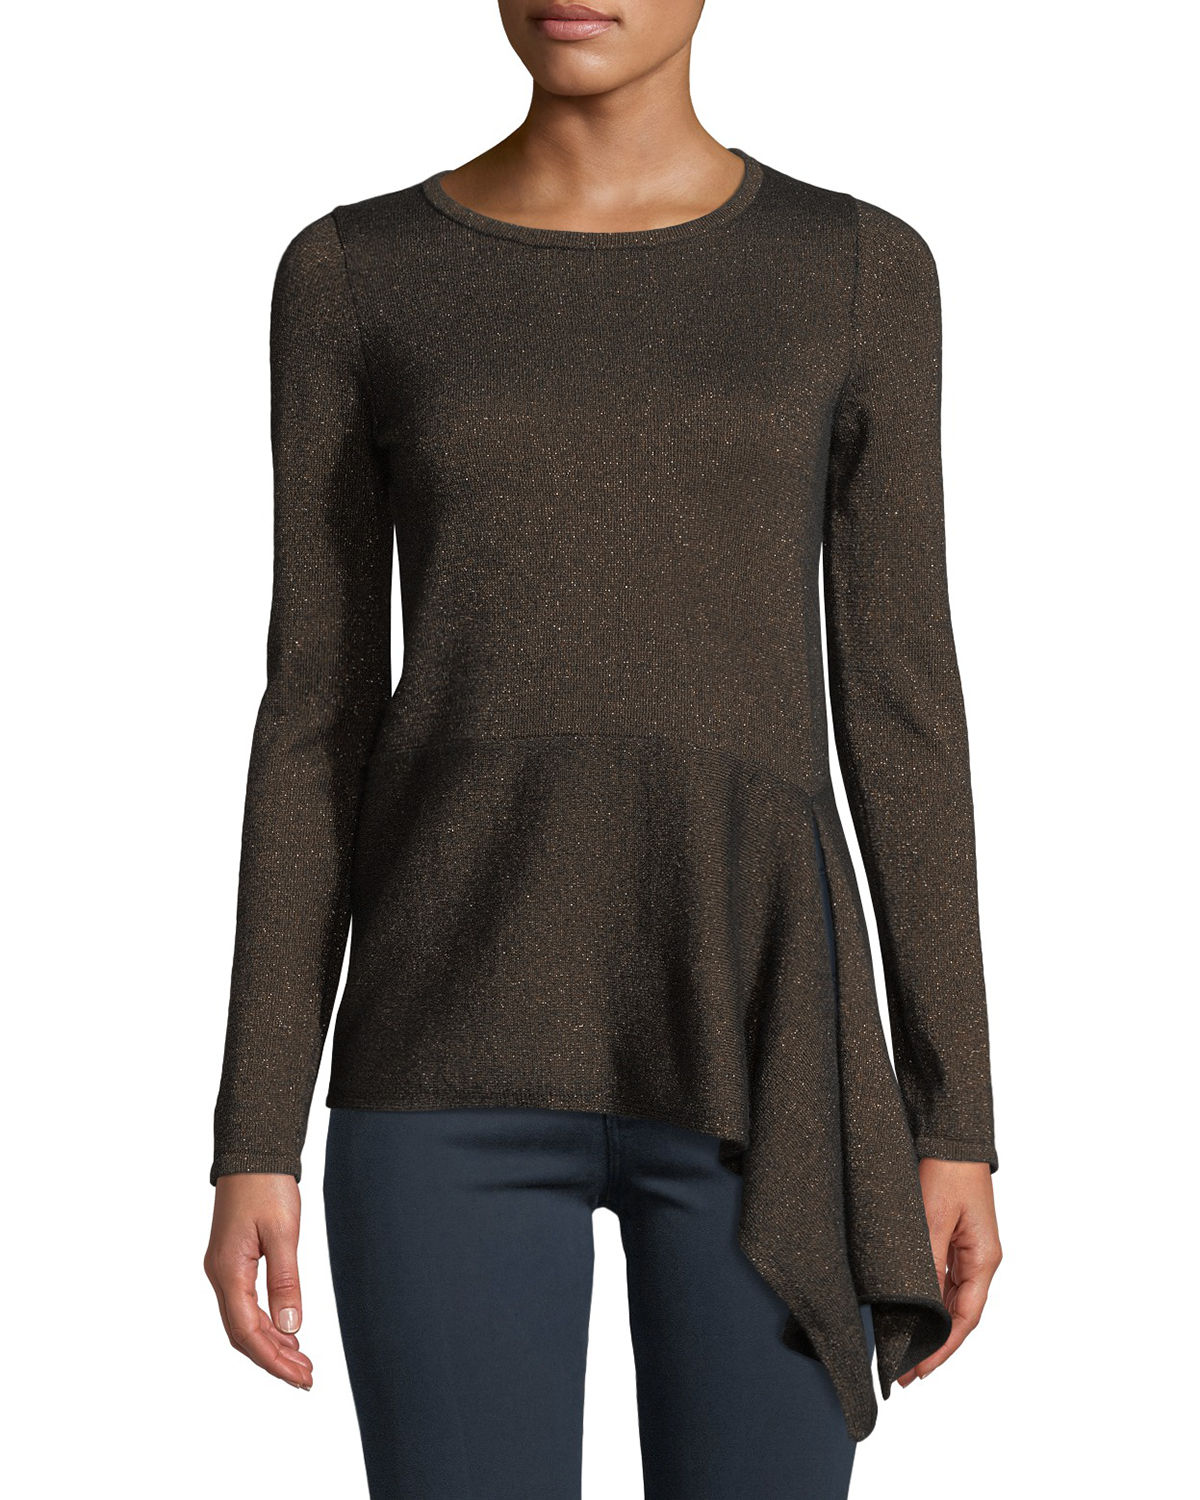 Cashmere Metallic Asymmetric Peplum Sweater